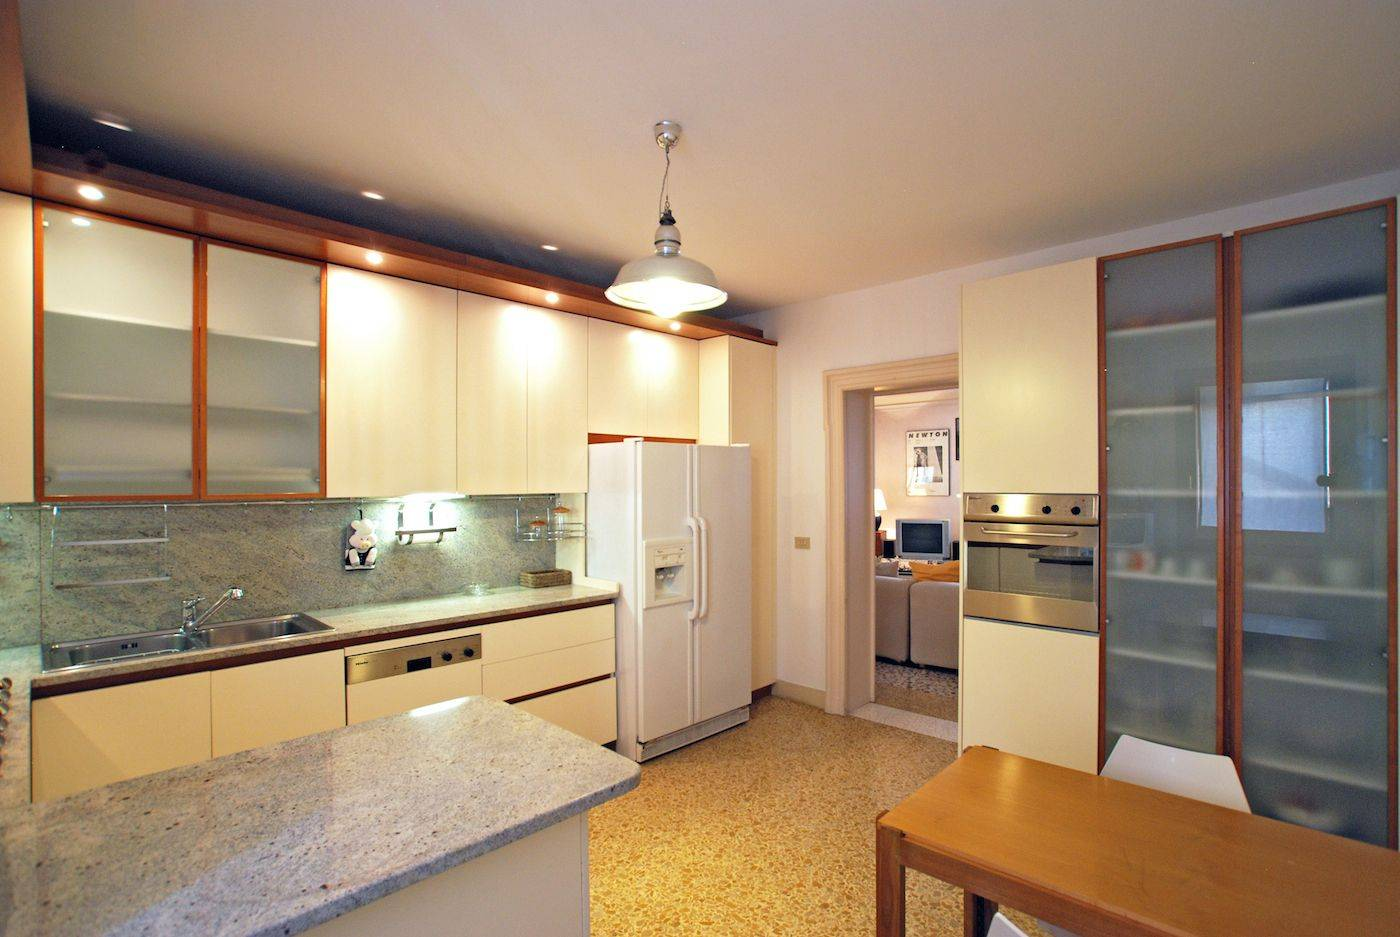 spacious kitchen with every possible amenity